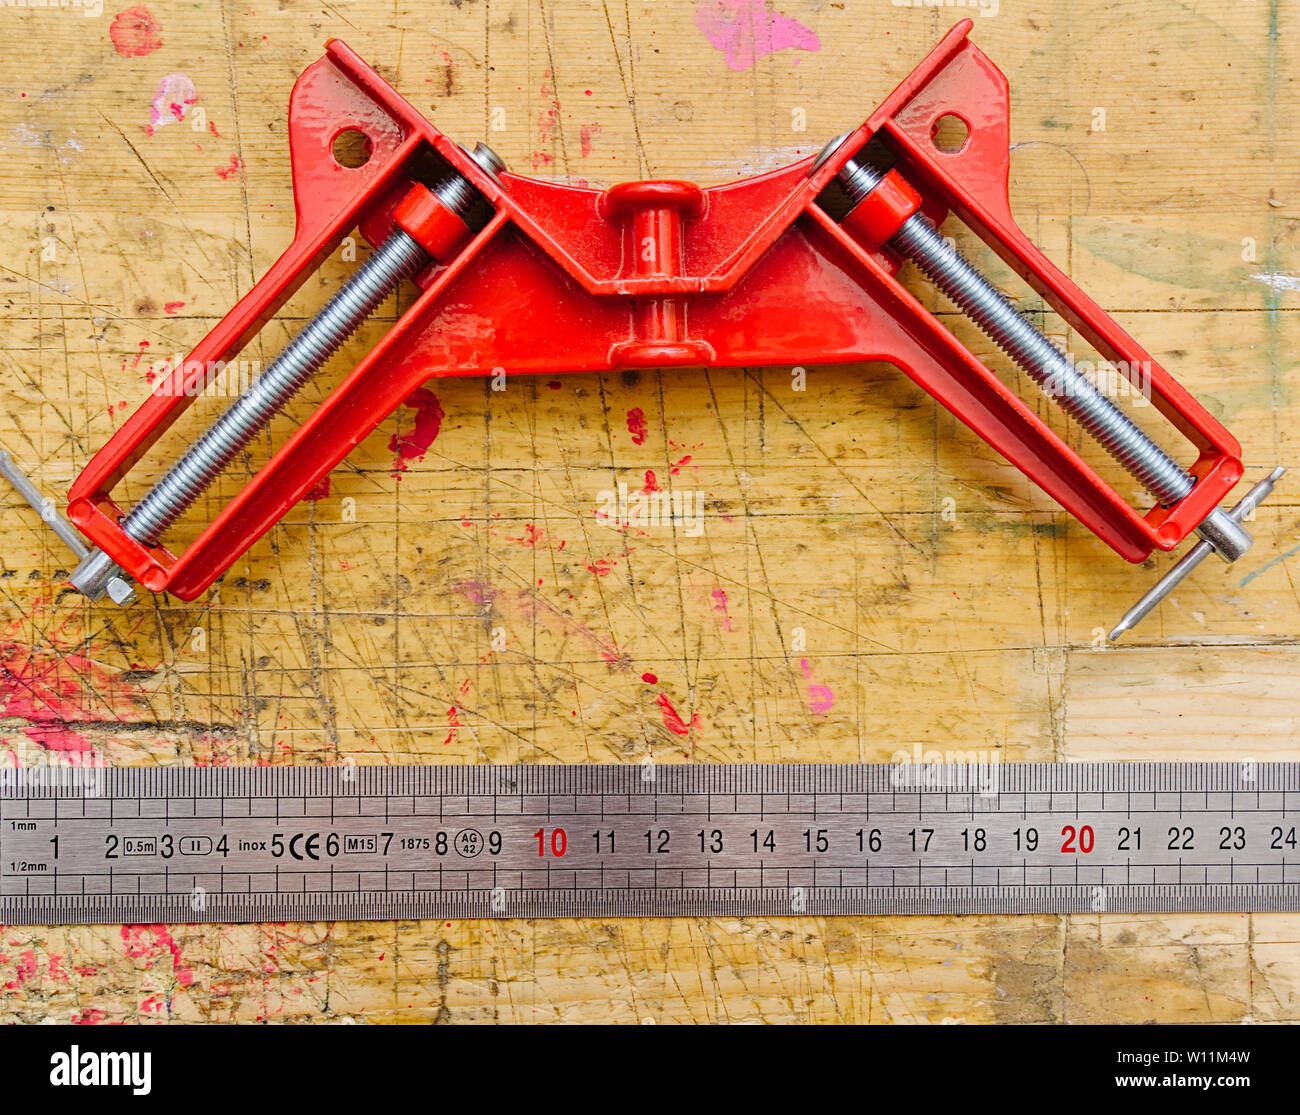 Superb Angle Clamp And Ruler On Red Paint Stained Wooden Workbench Andrewgaddart Wooden Chair Designs For Living Room Andrewgaddartcom